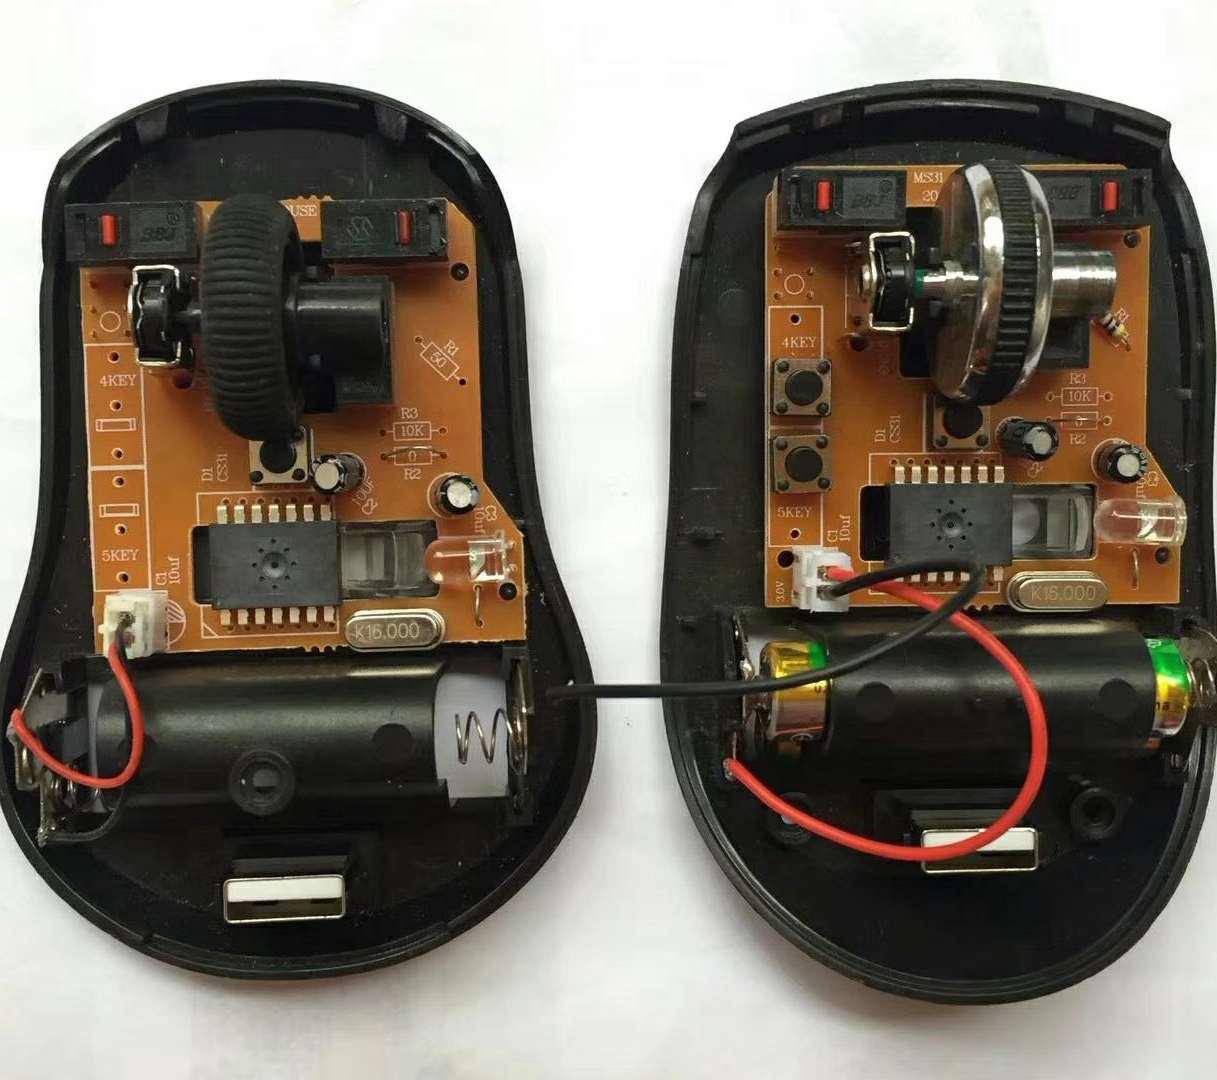 Wireless Mouse IC Optical sensor Ms8310 With Receiver Dip14l 3-6 Buttons Cpi  1200(Default)/1600/800 No Need Rf Transmitter